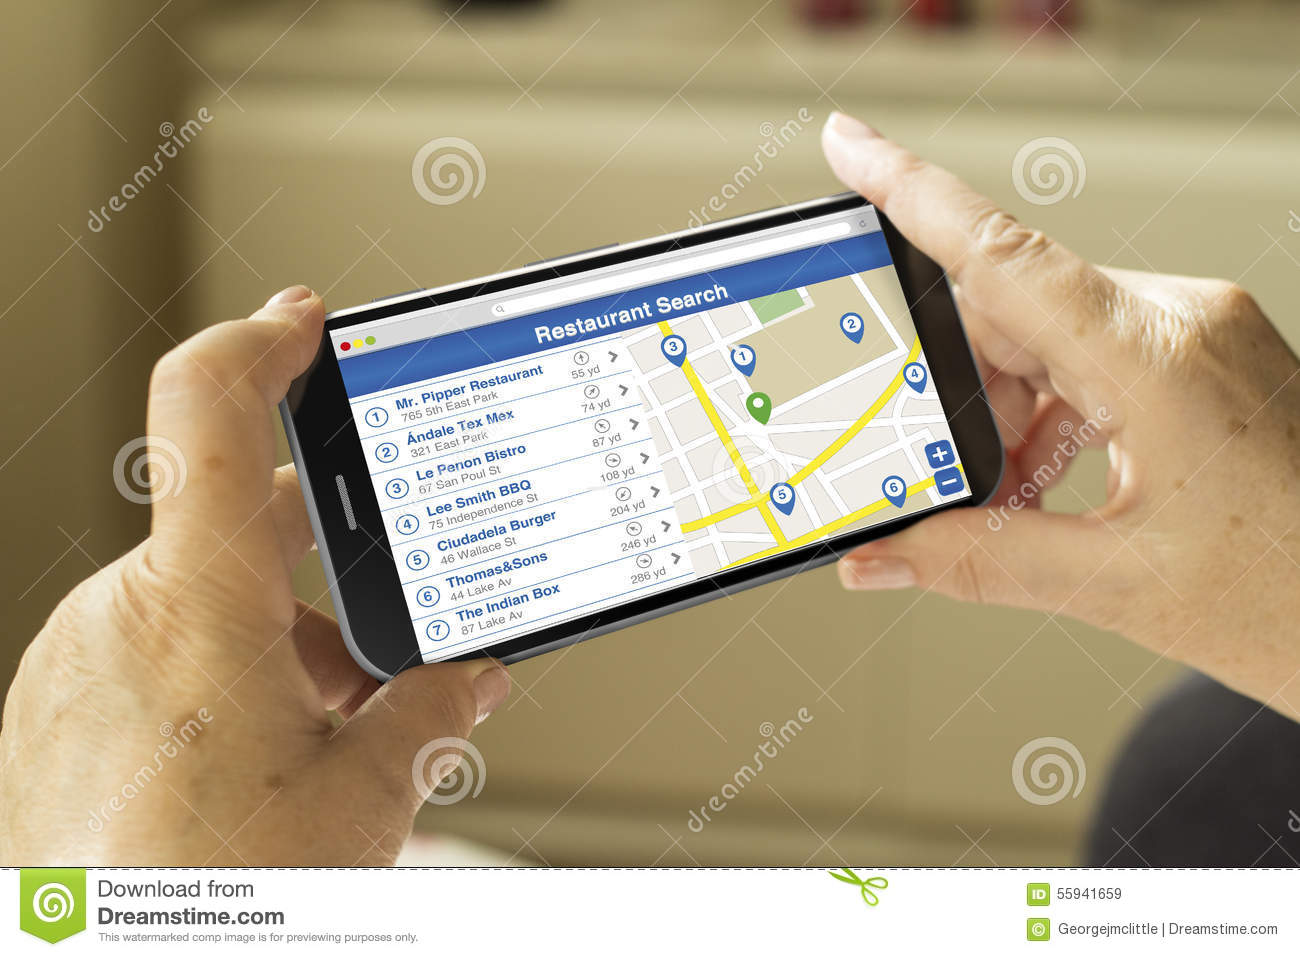 Restaurant Search Smartphone Stock Photo